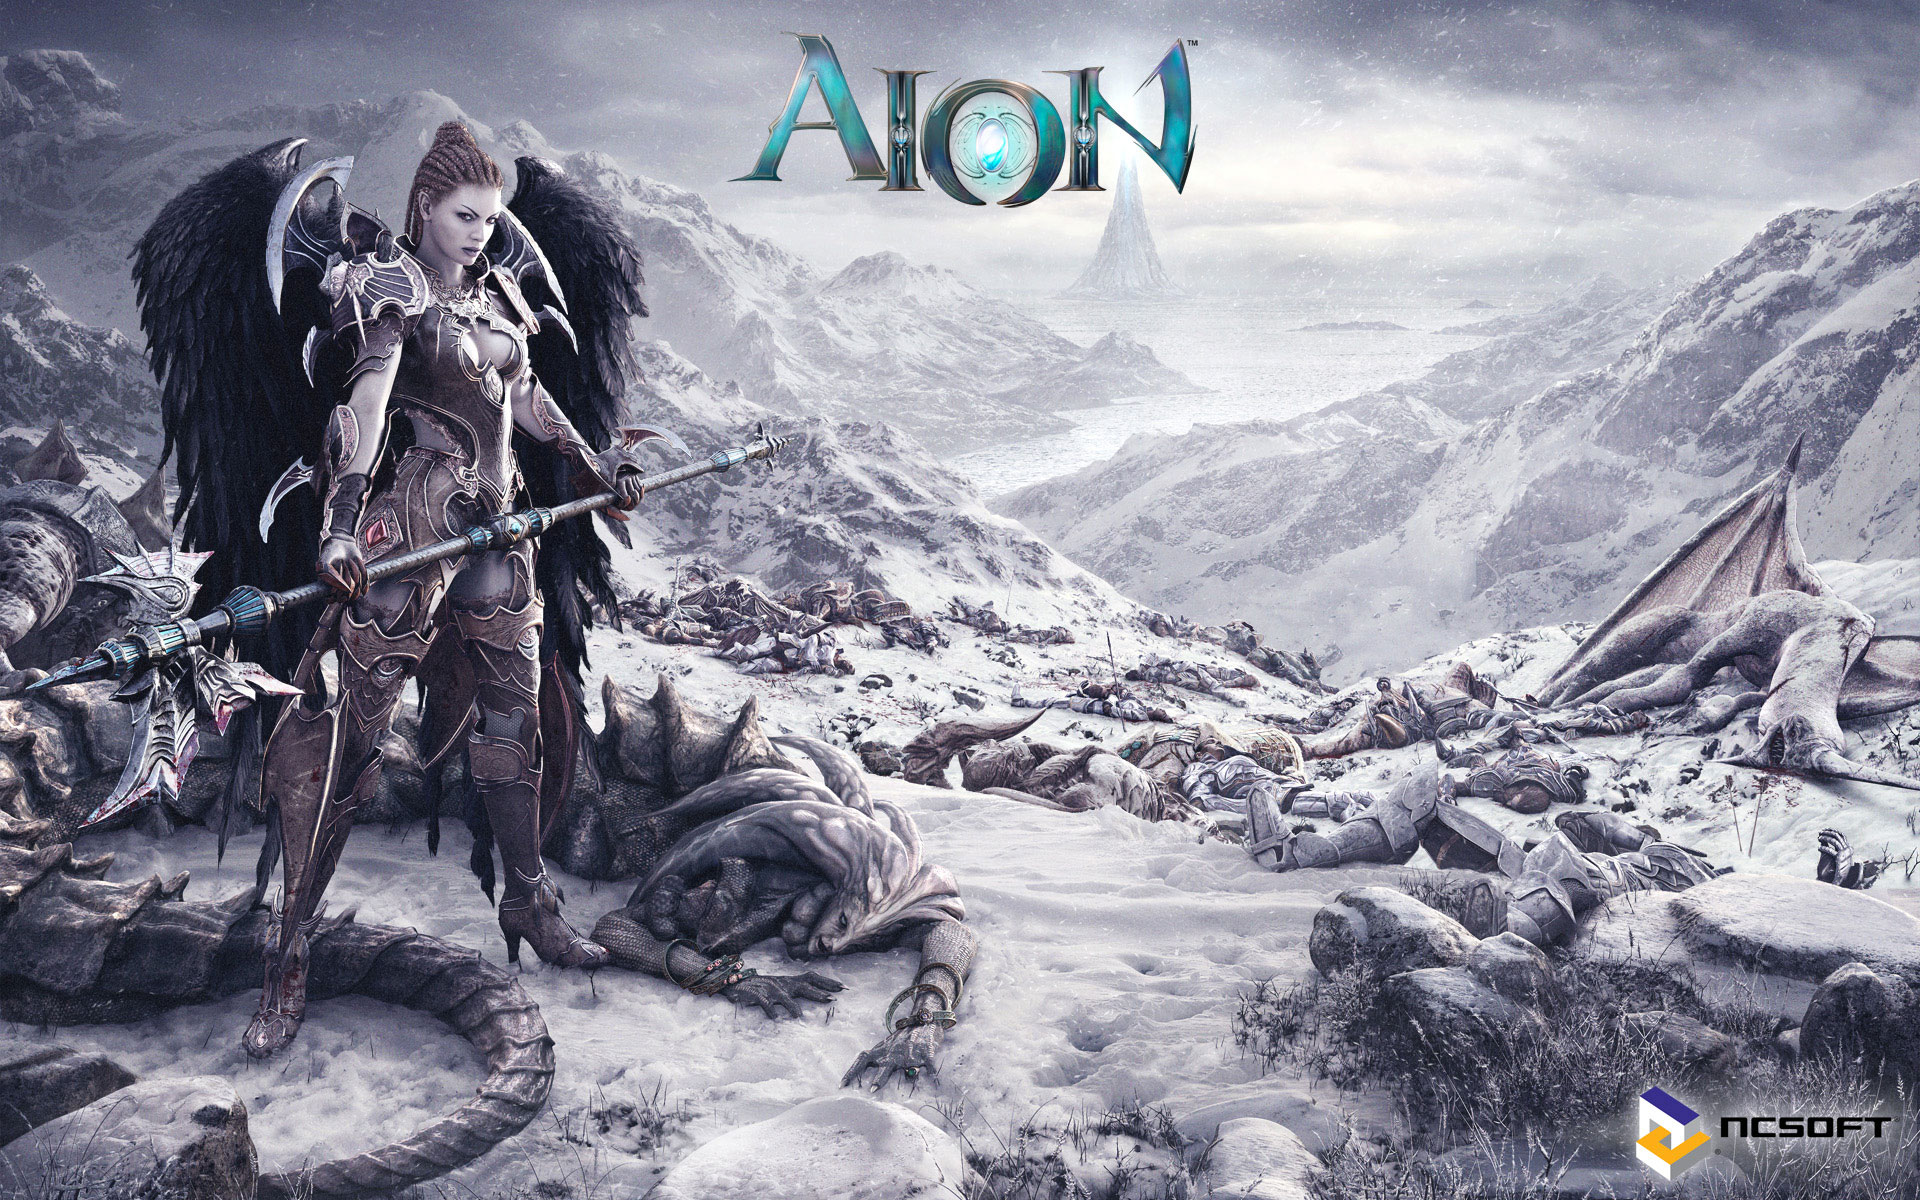 Wallpapers Games HD Wallpapers aion online game widejpg 1920 x 1920x1200